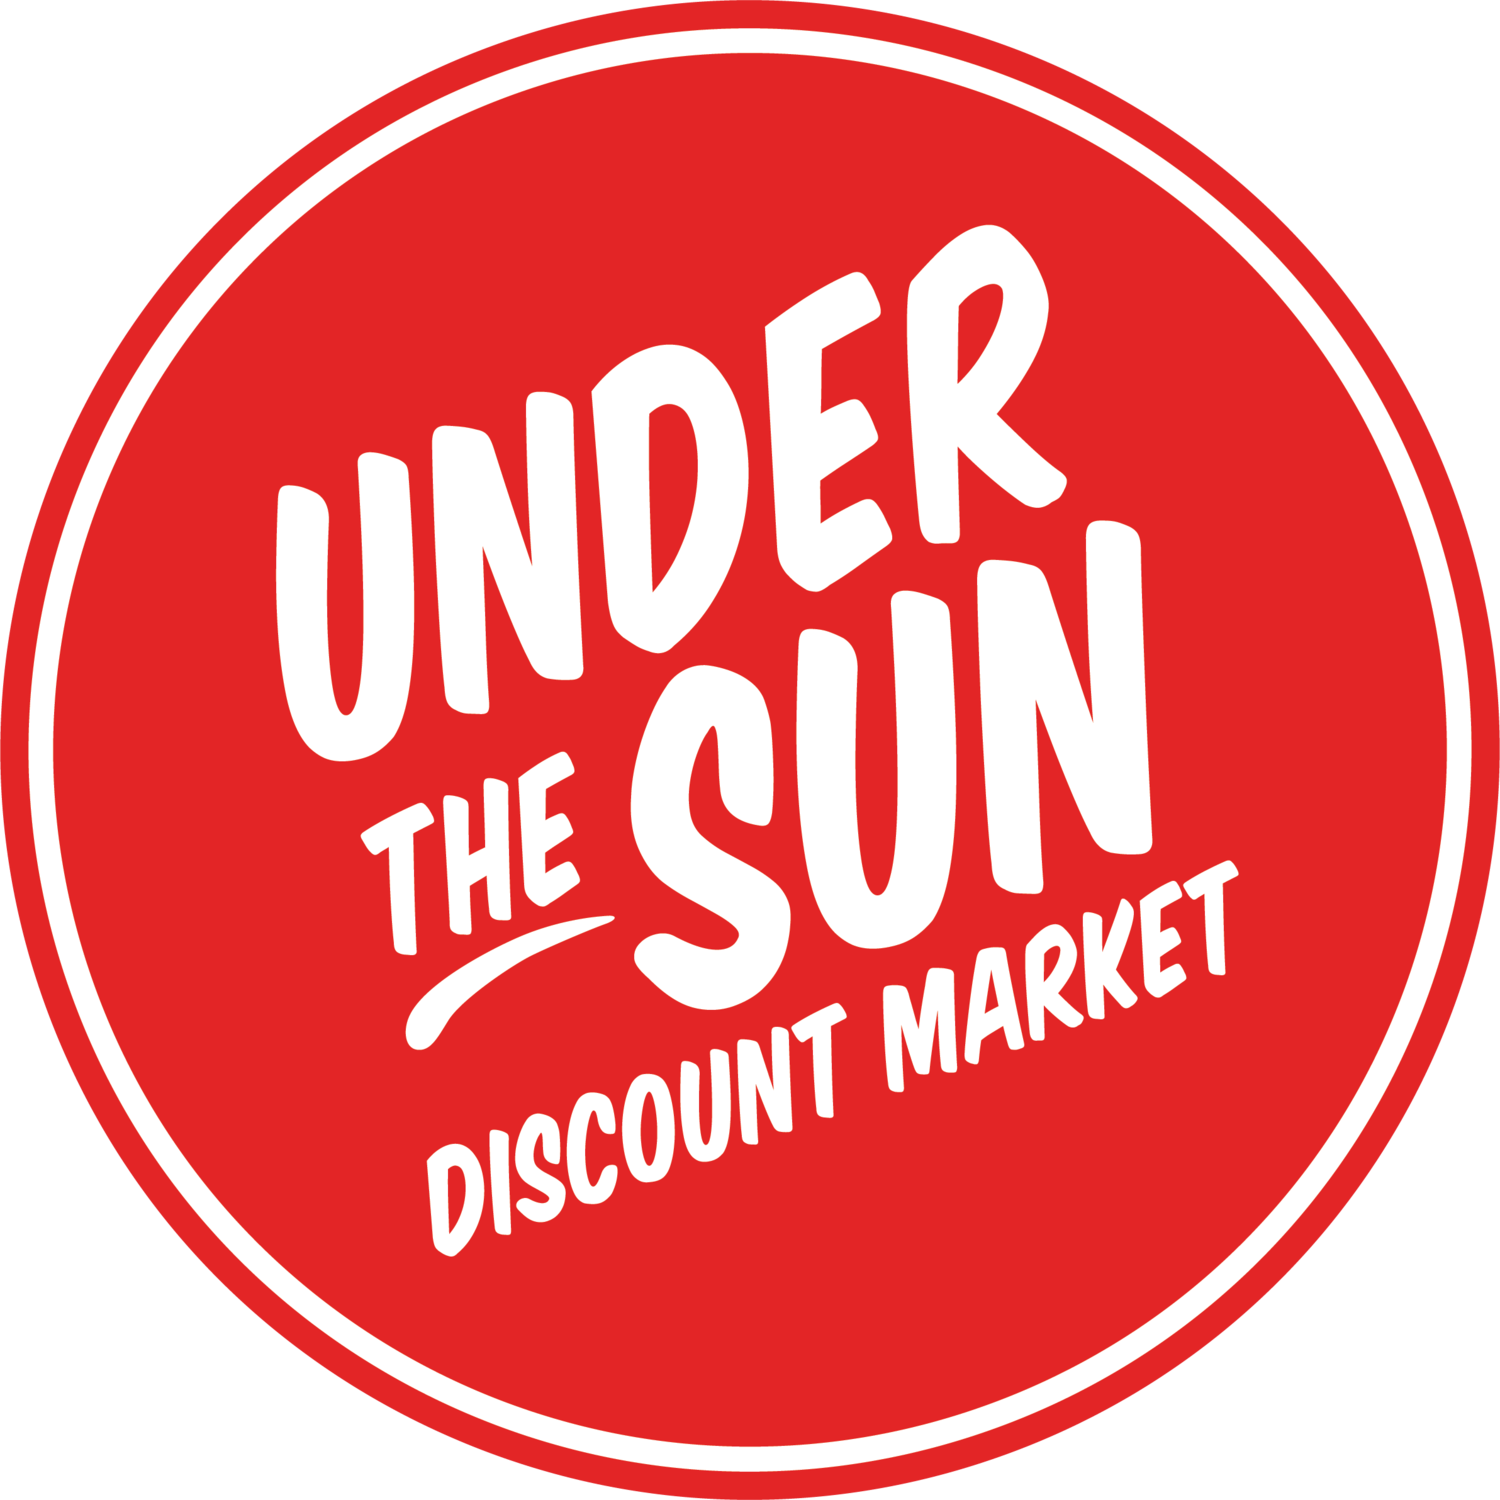 Under the Sun Discount Market